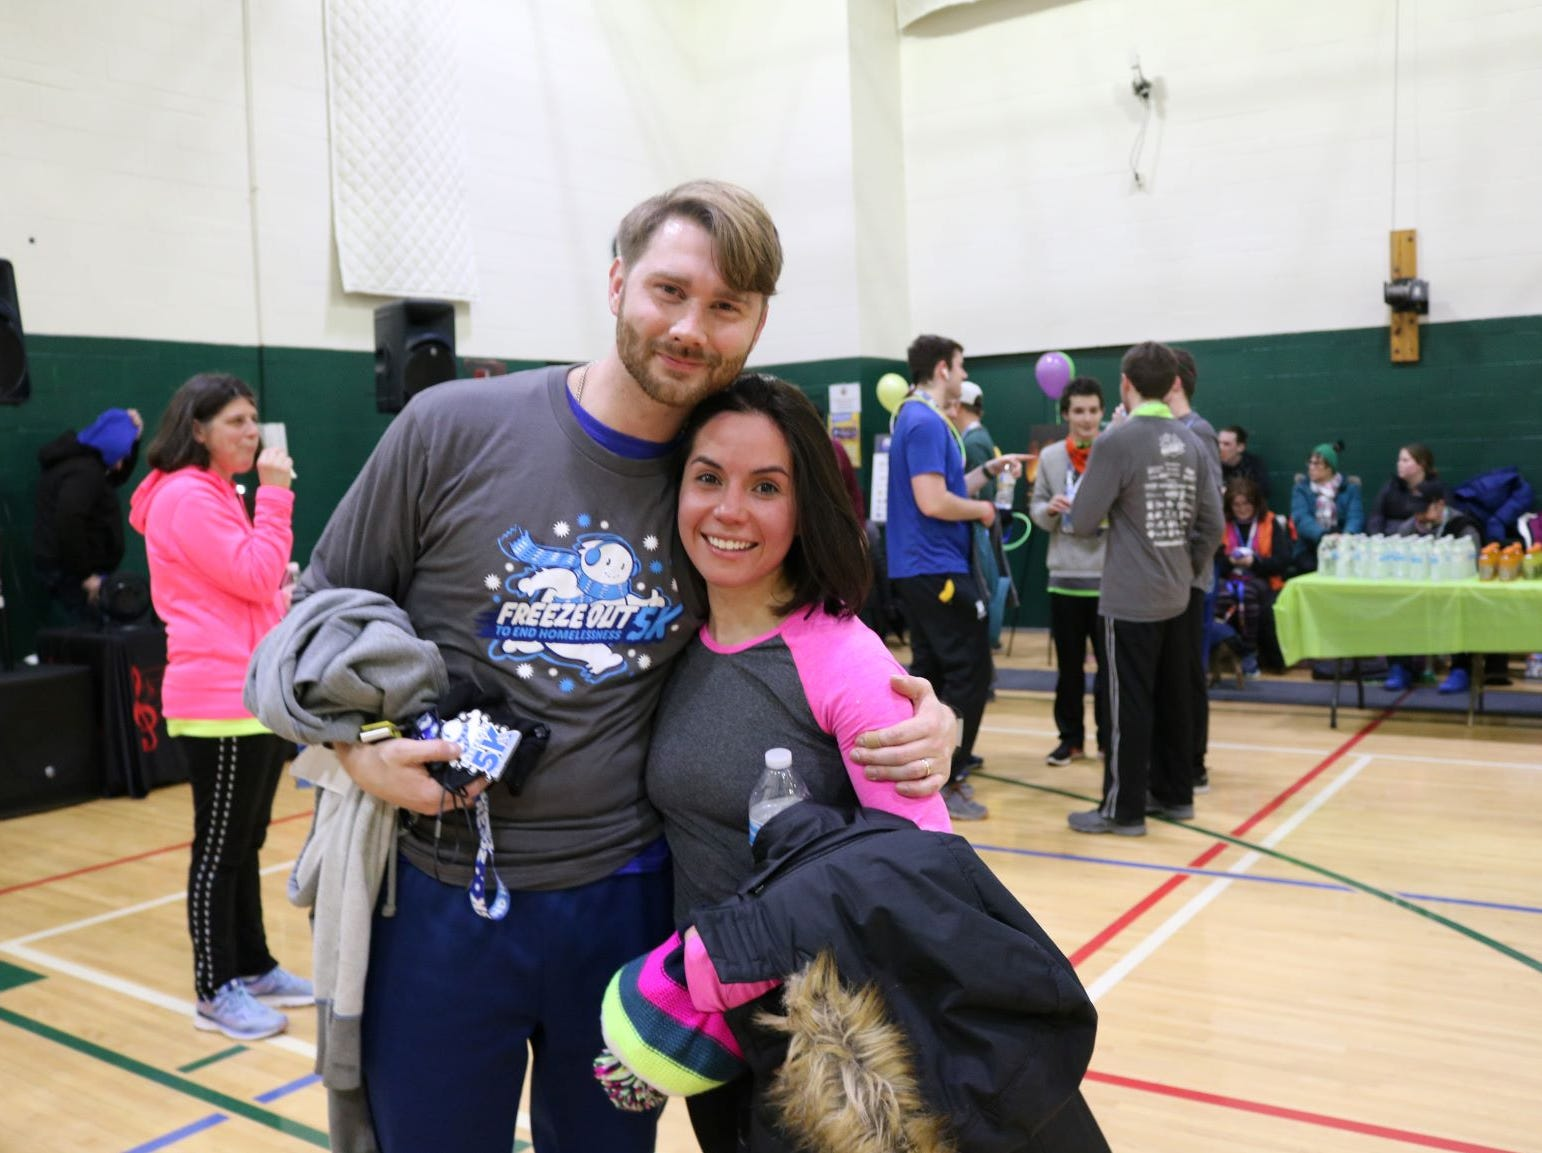 Scenes from Friday night's Freeze Out 5K hosted by the Rescue Mission.